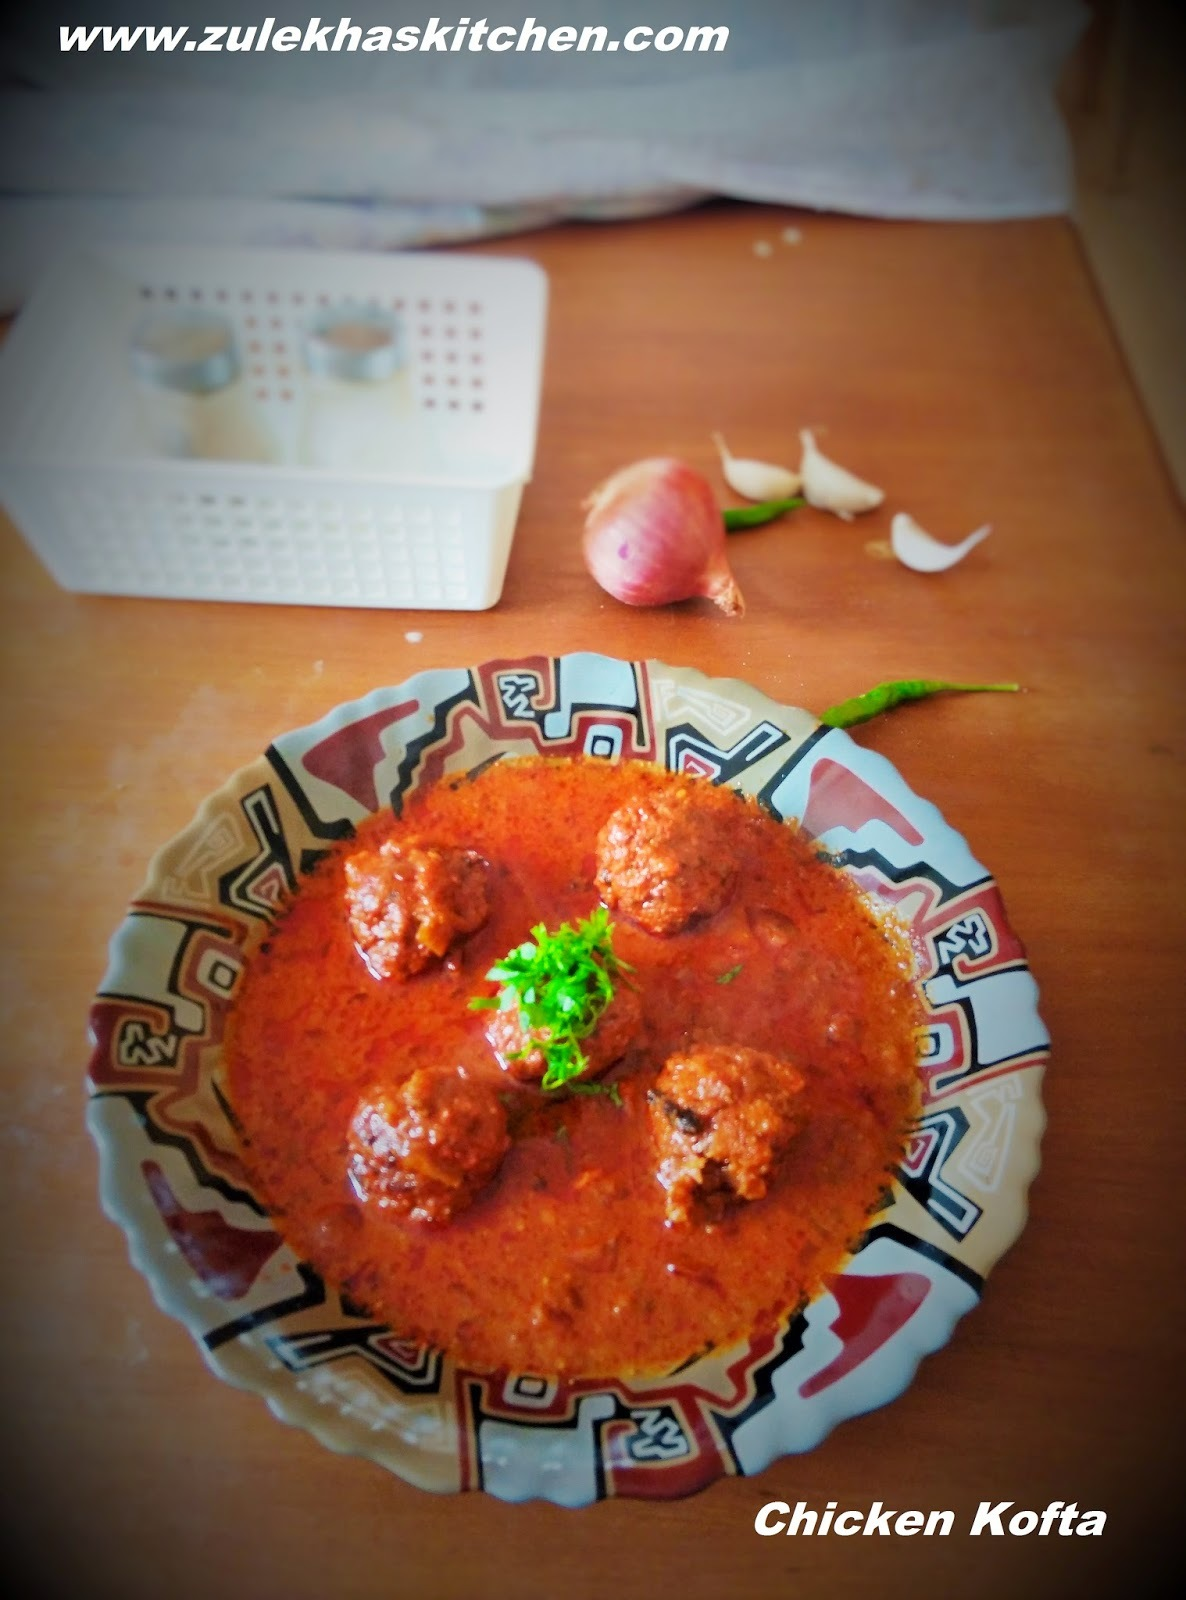 Recipe of chicken kofta